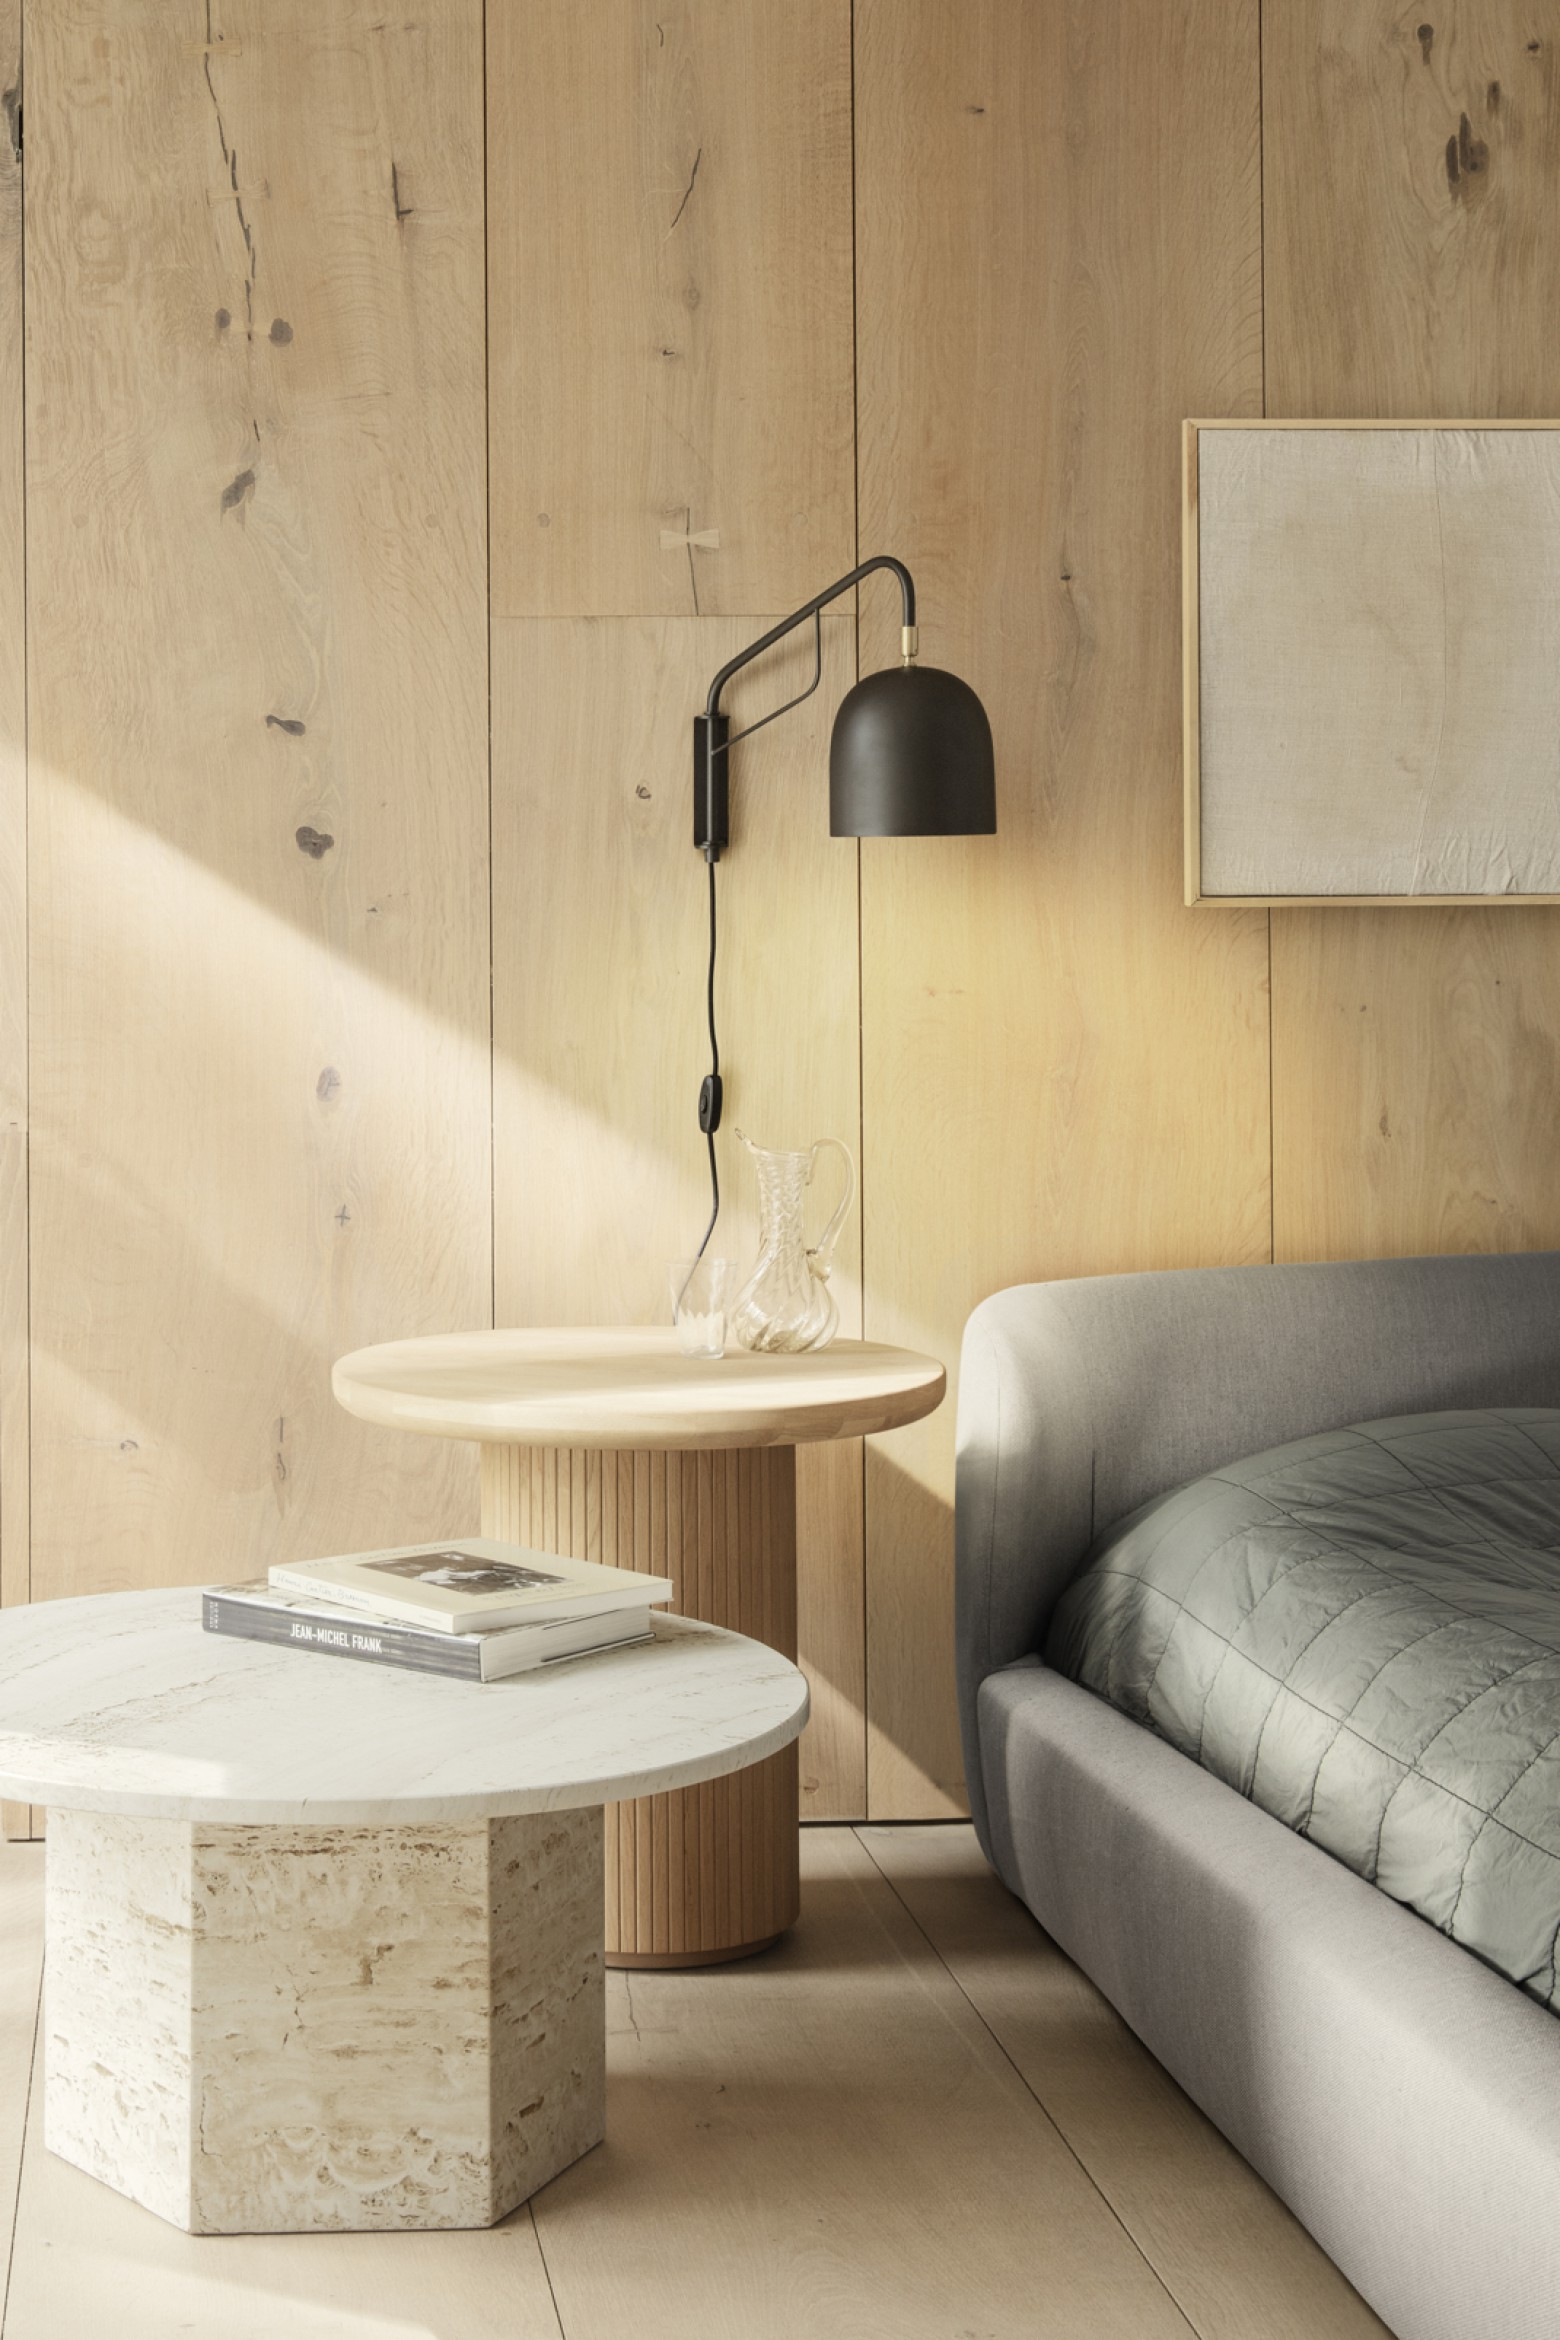 Howard wandlamp met beweegbare arm  Victors Design Agency